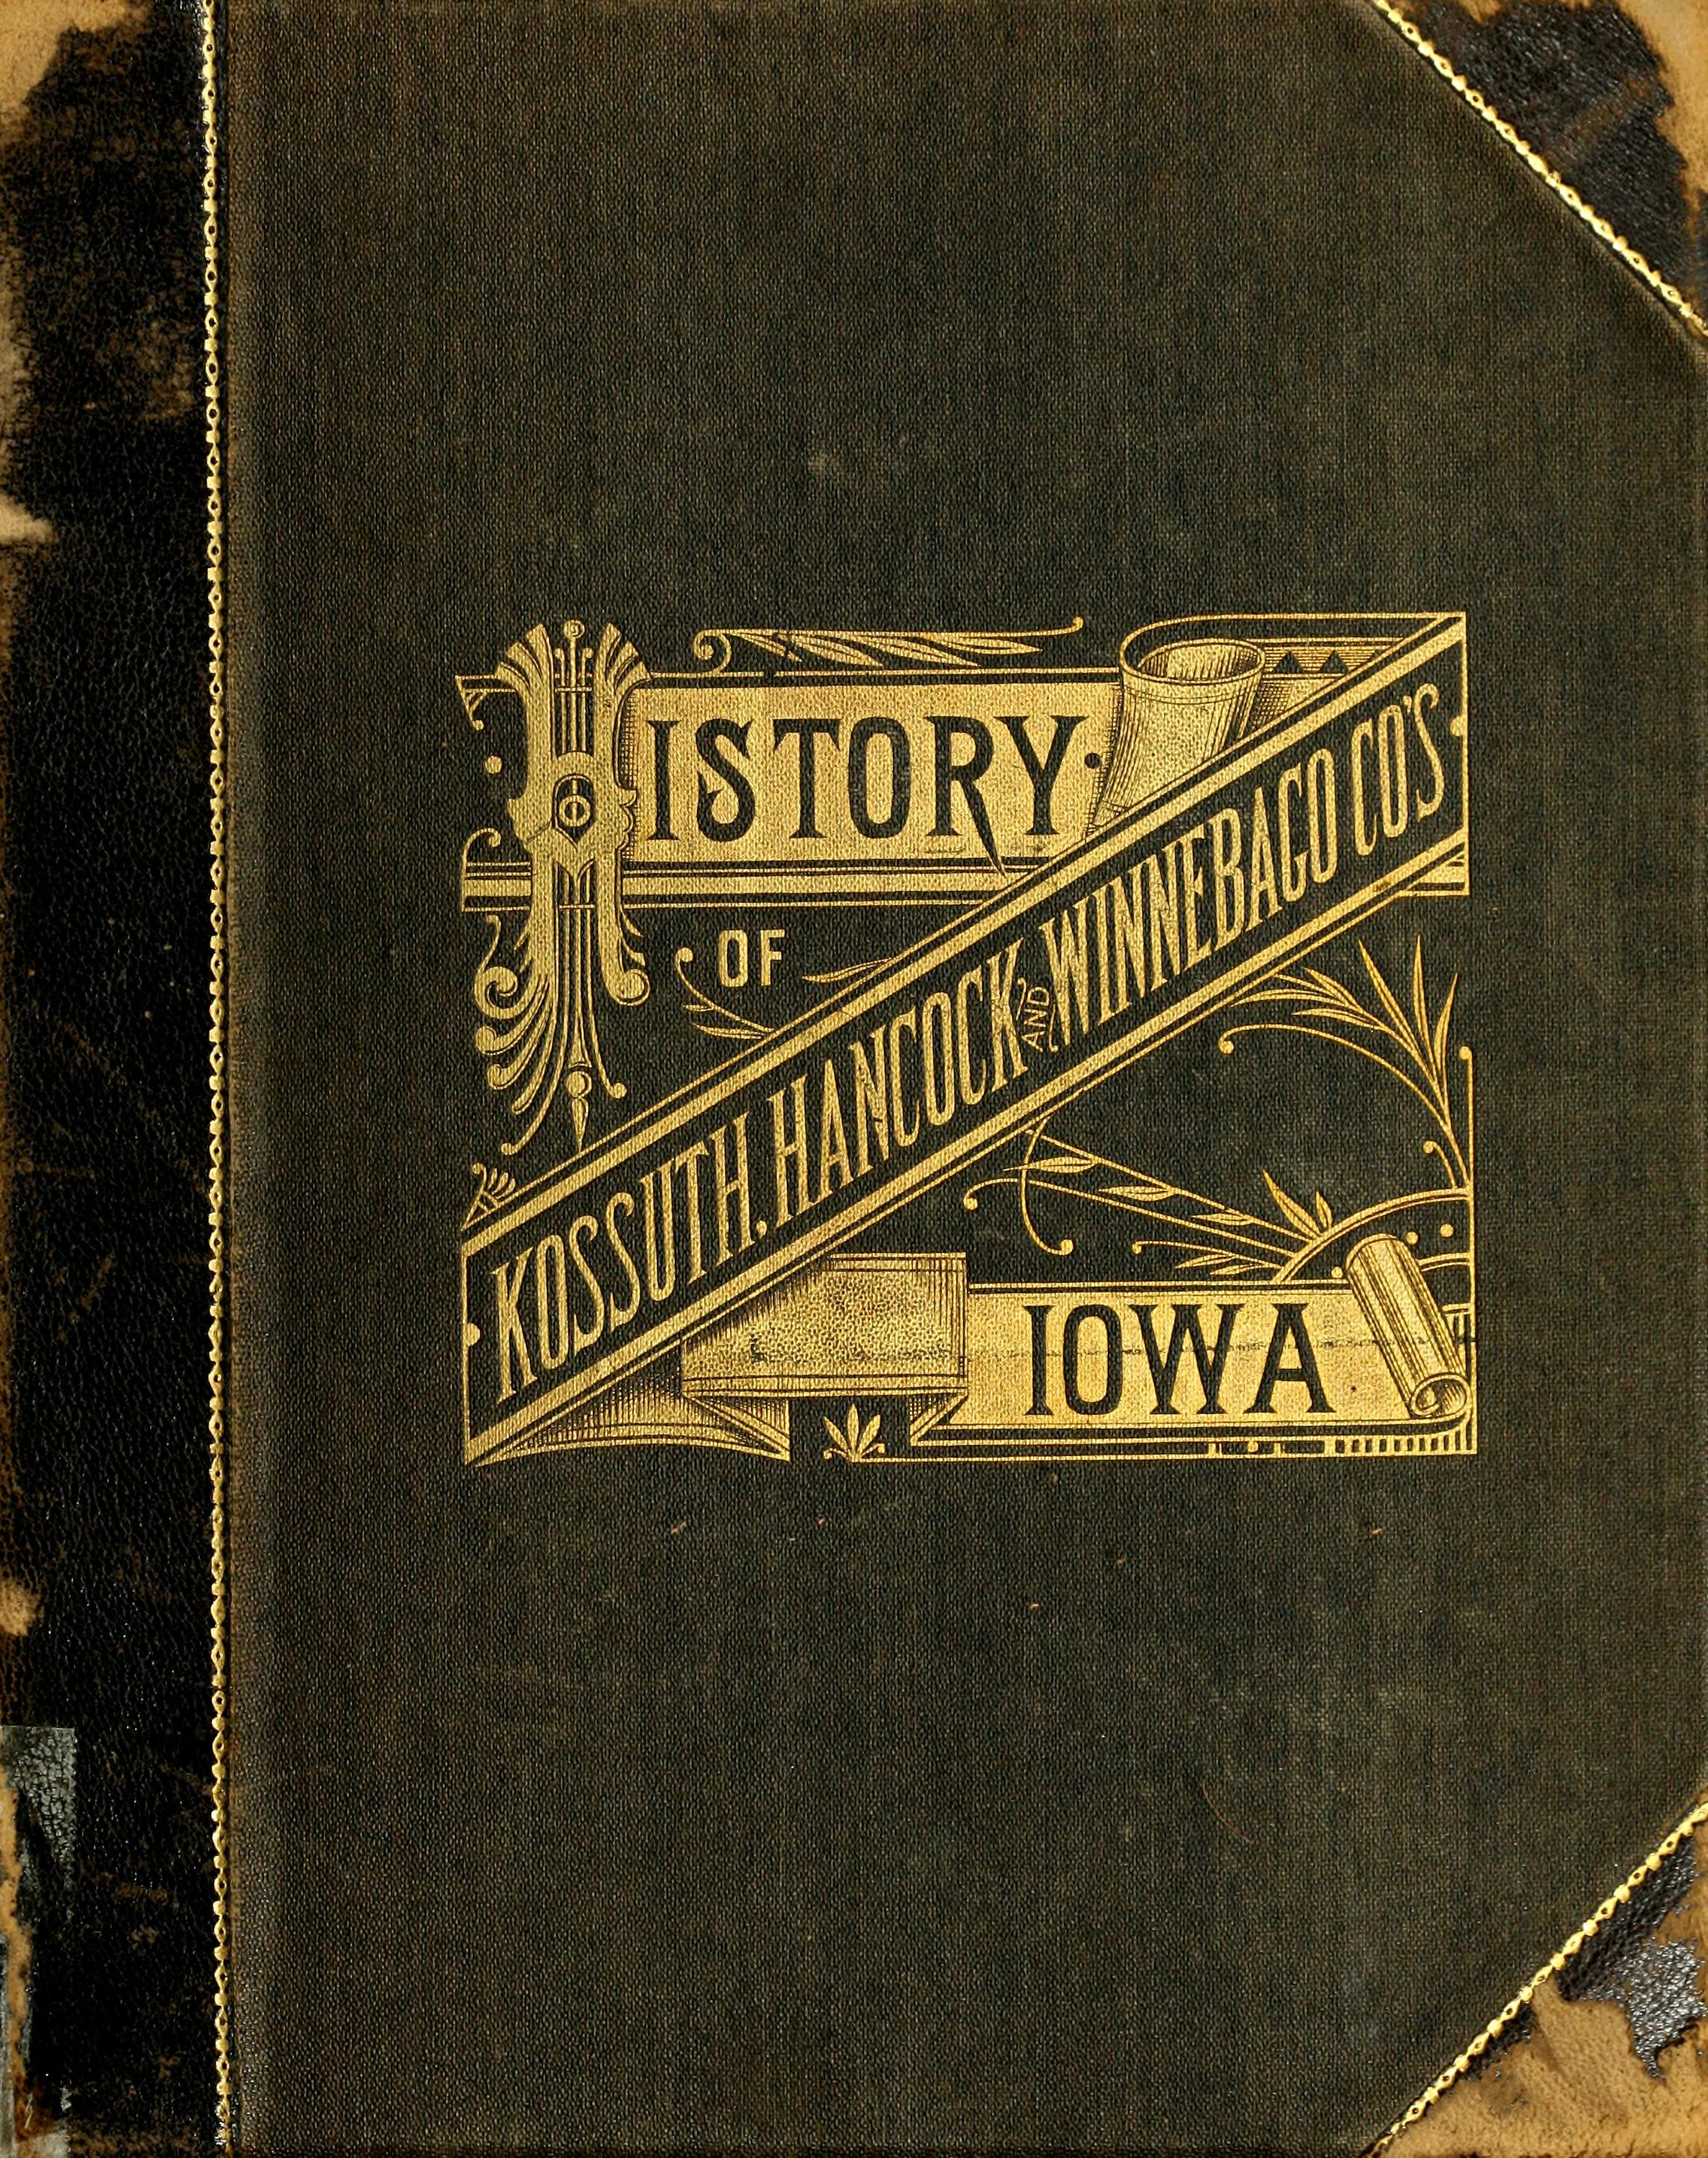 History of Kossuth, Hancock, and Winnebago counties, Iowa